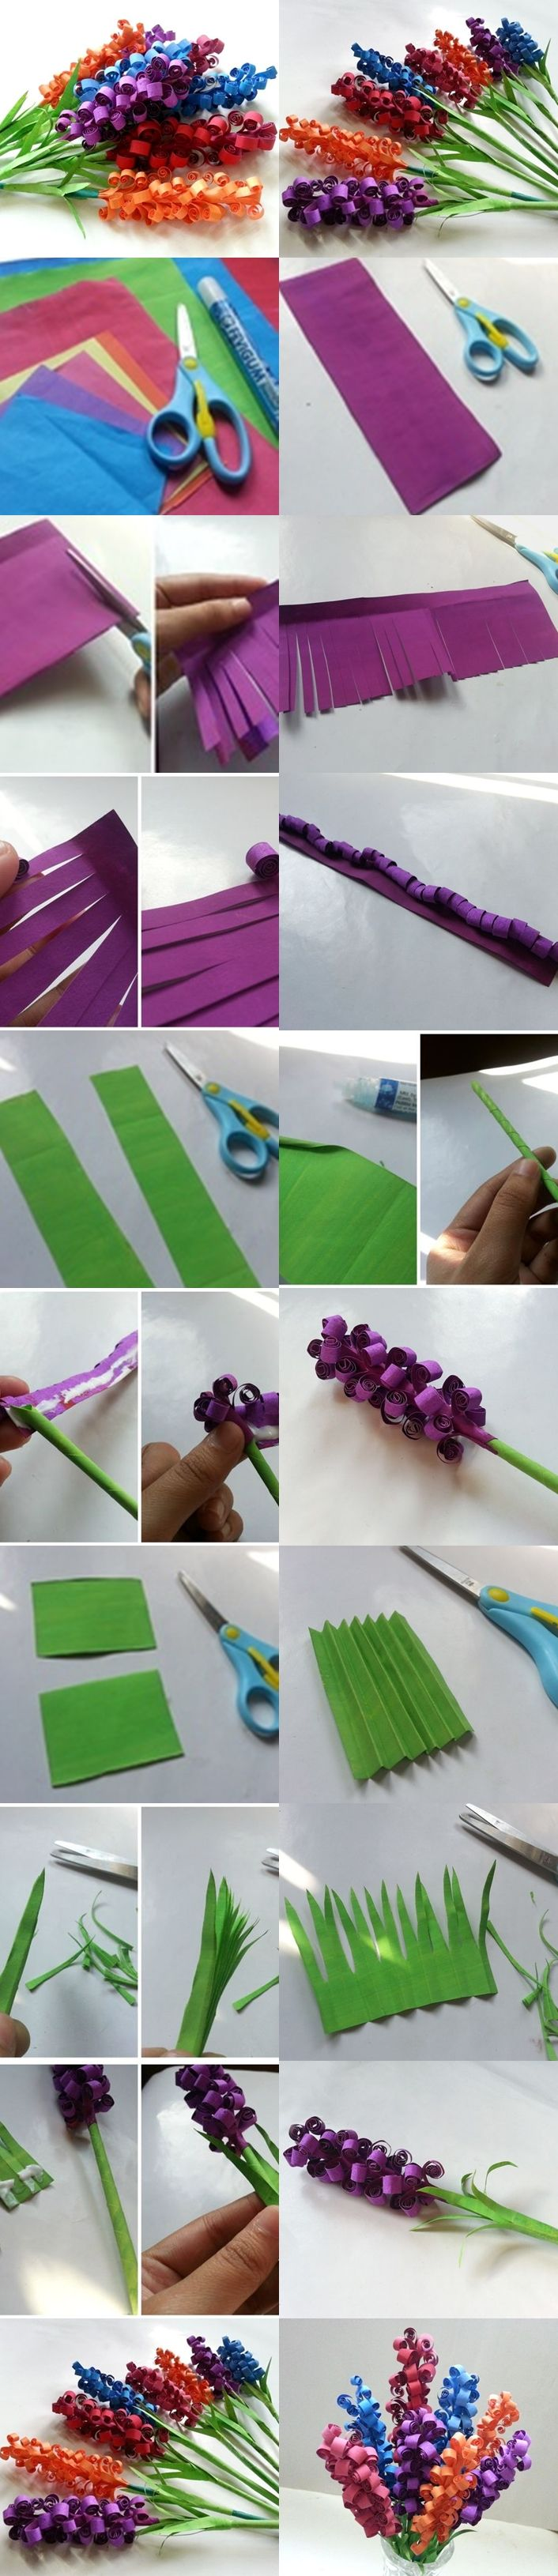 DIY Swirly Paper Flowers look really cute. My first thought was to try rolling t